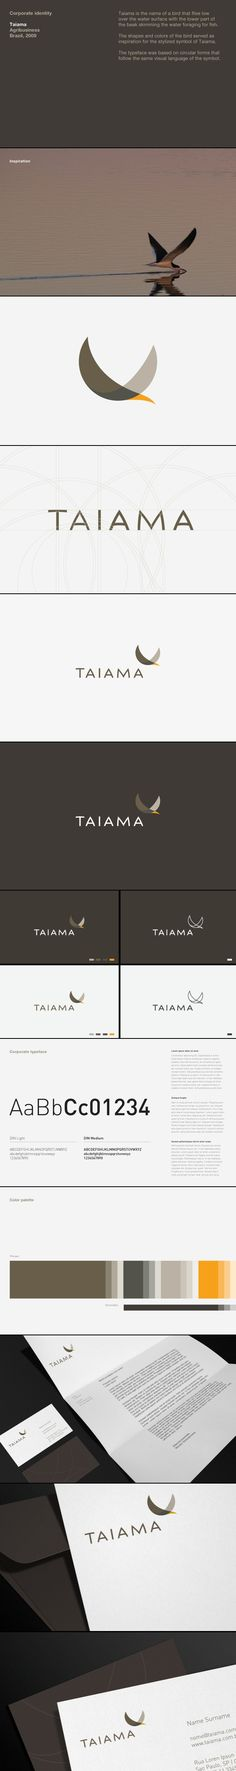 Taiama Logo Design, Inspiration Corporate Identity via Beahnce